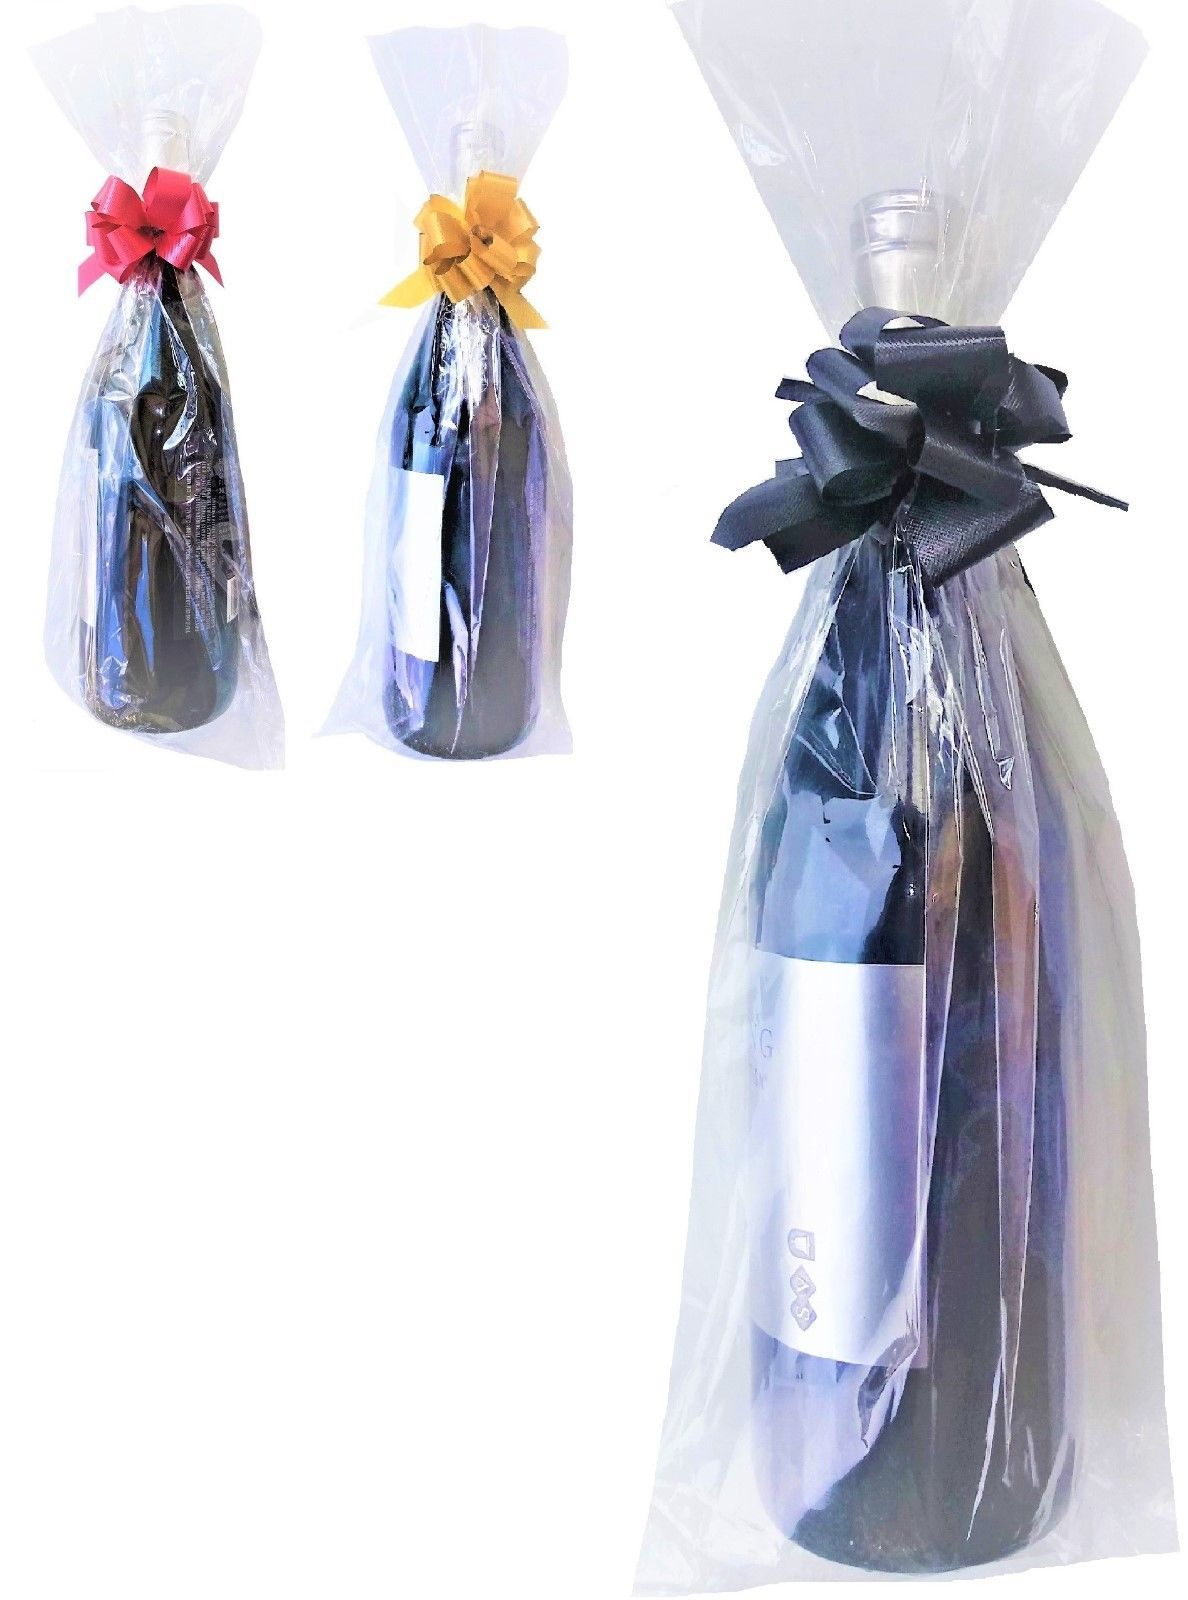 Cellophane 170102 Wine Bottle Bags Clear Cello Bag Tall Pillar Candle Gift Packaging It Now Only 16 77 On Ebay